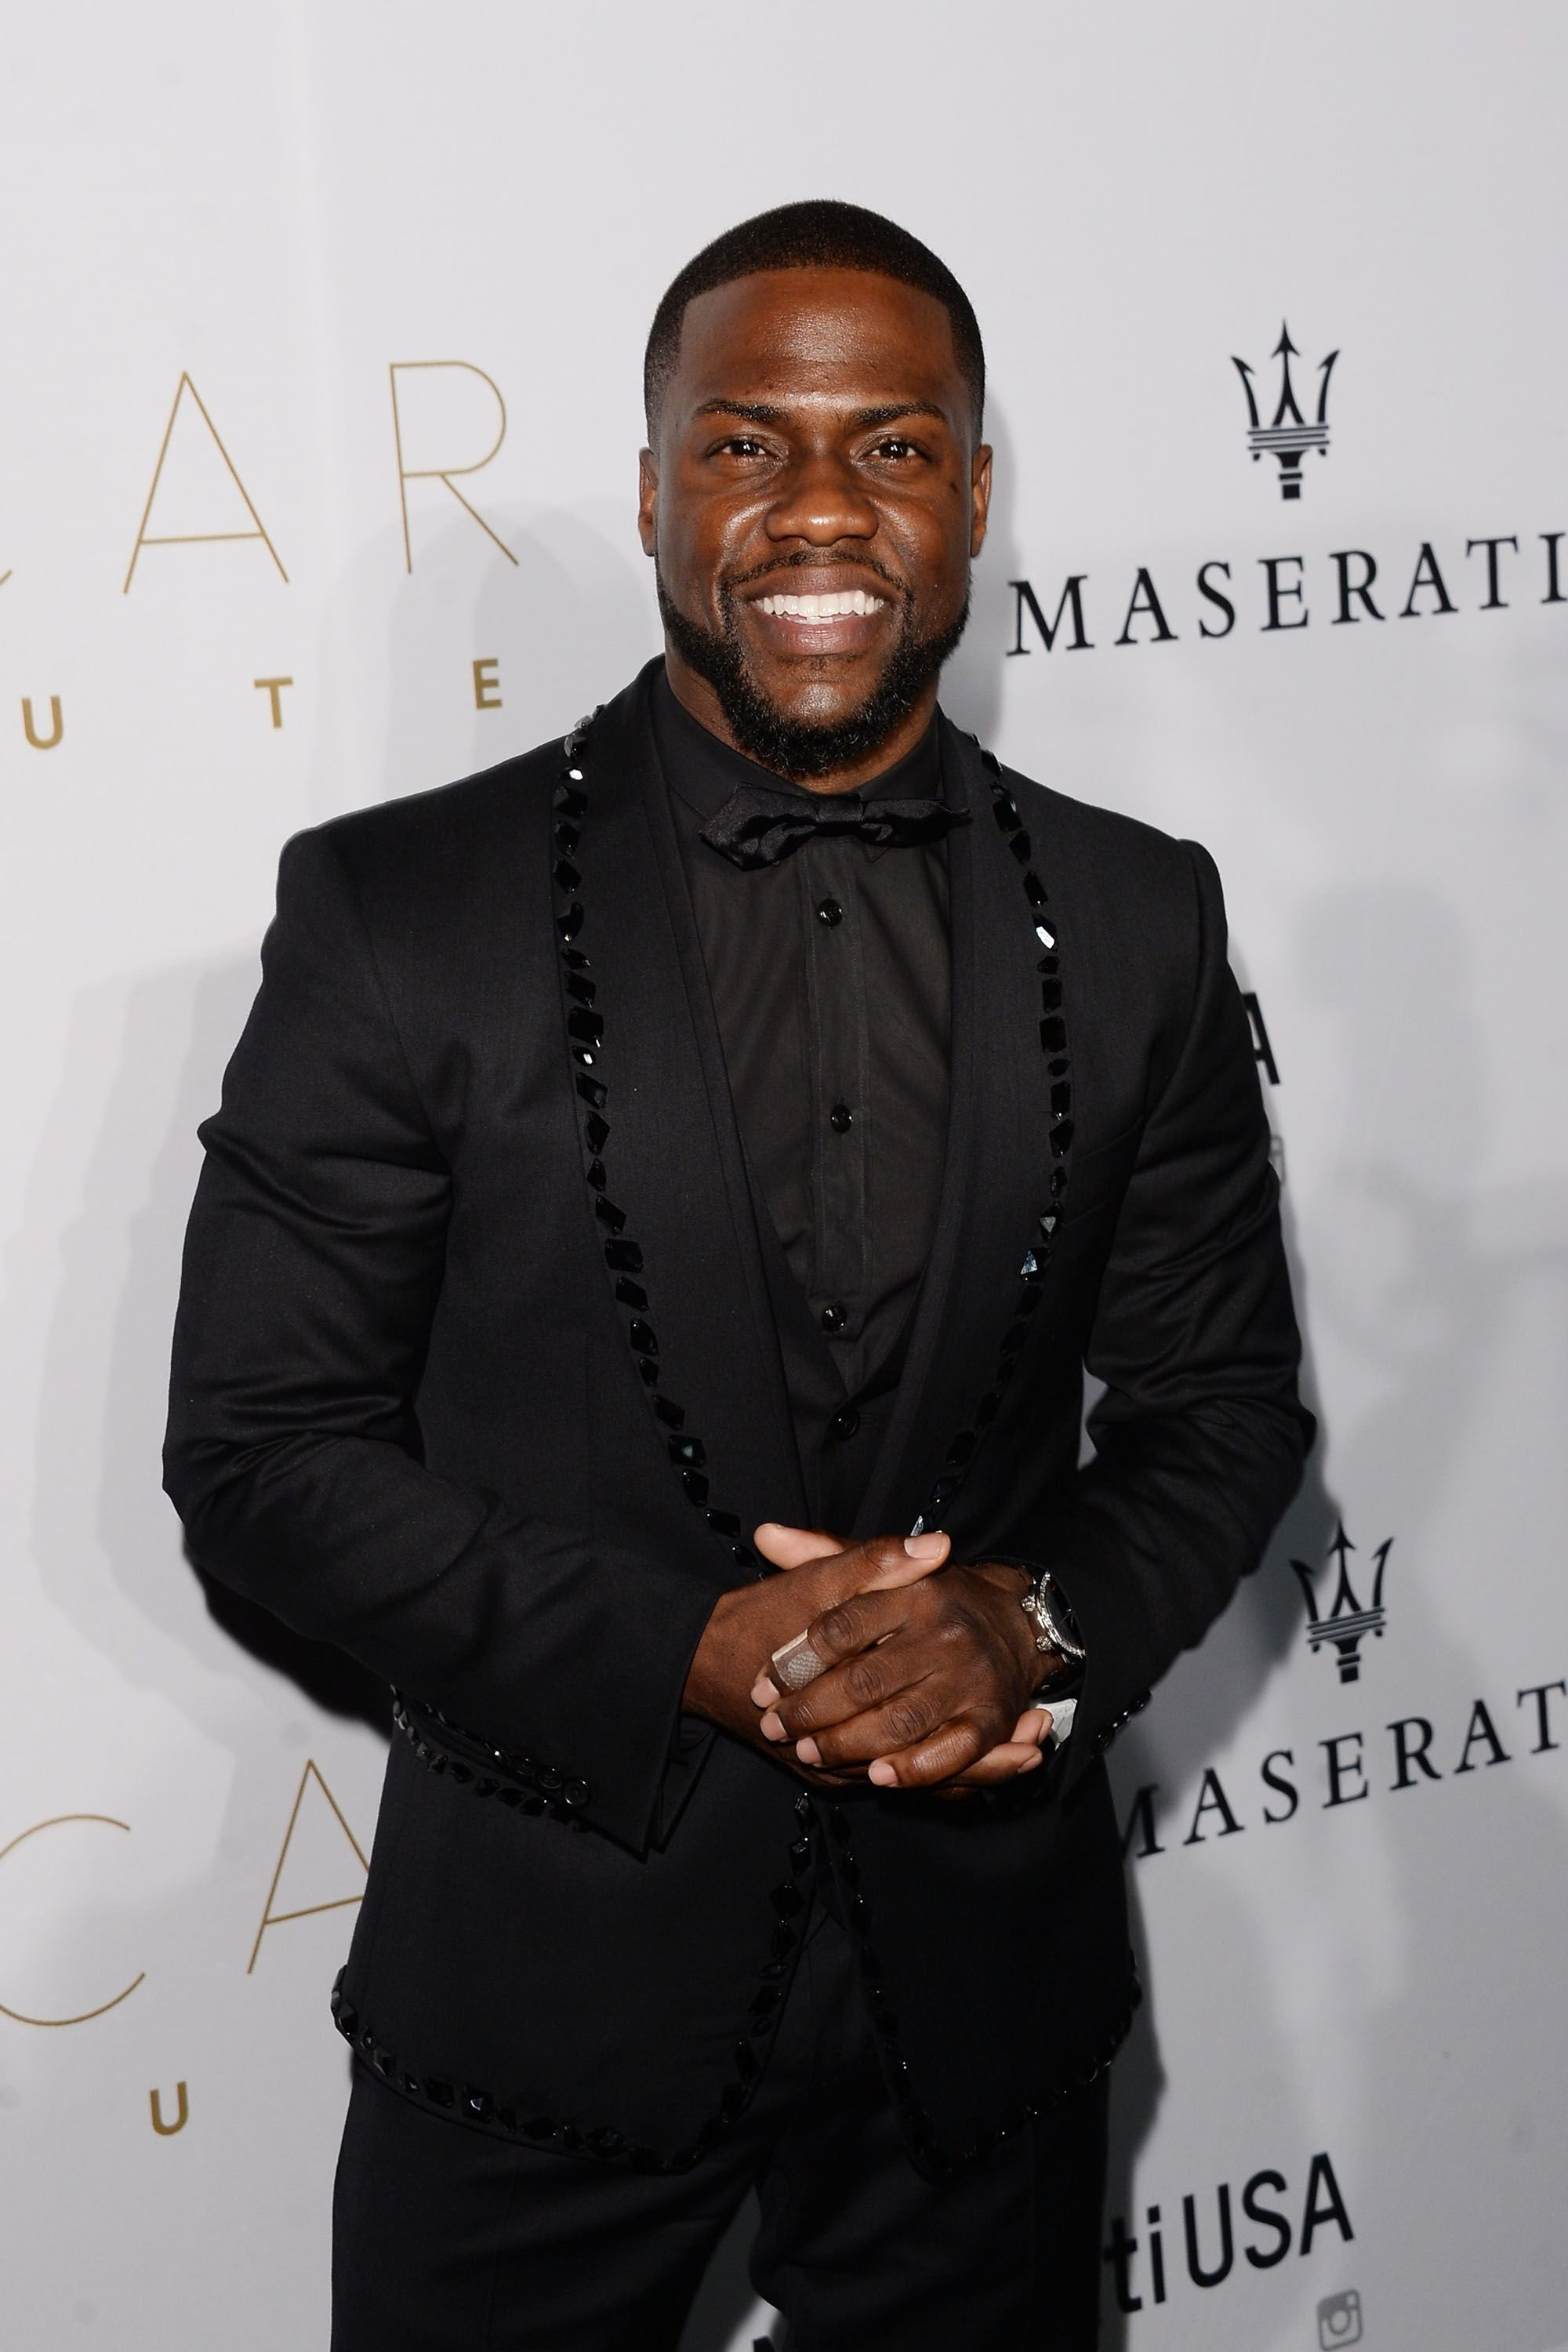 2016 Actor/comedian Kevin Hart attends and hosts the 2016 Oscar Salute after party at W Hollywood on February 28, 2016 | Photo: Getty Images